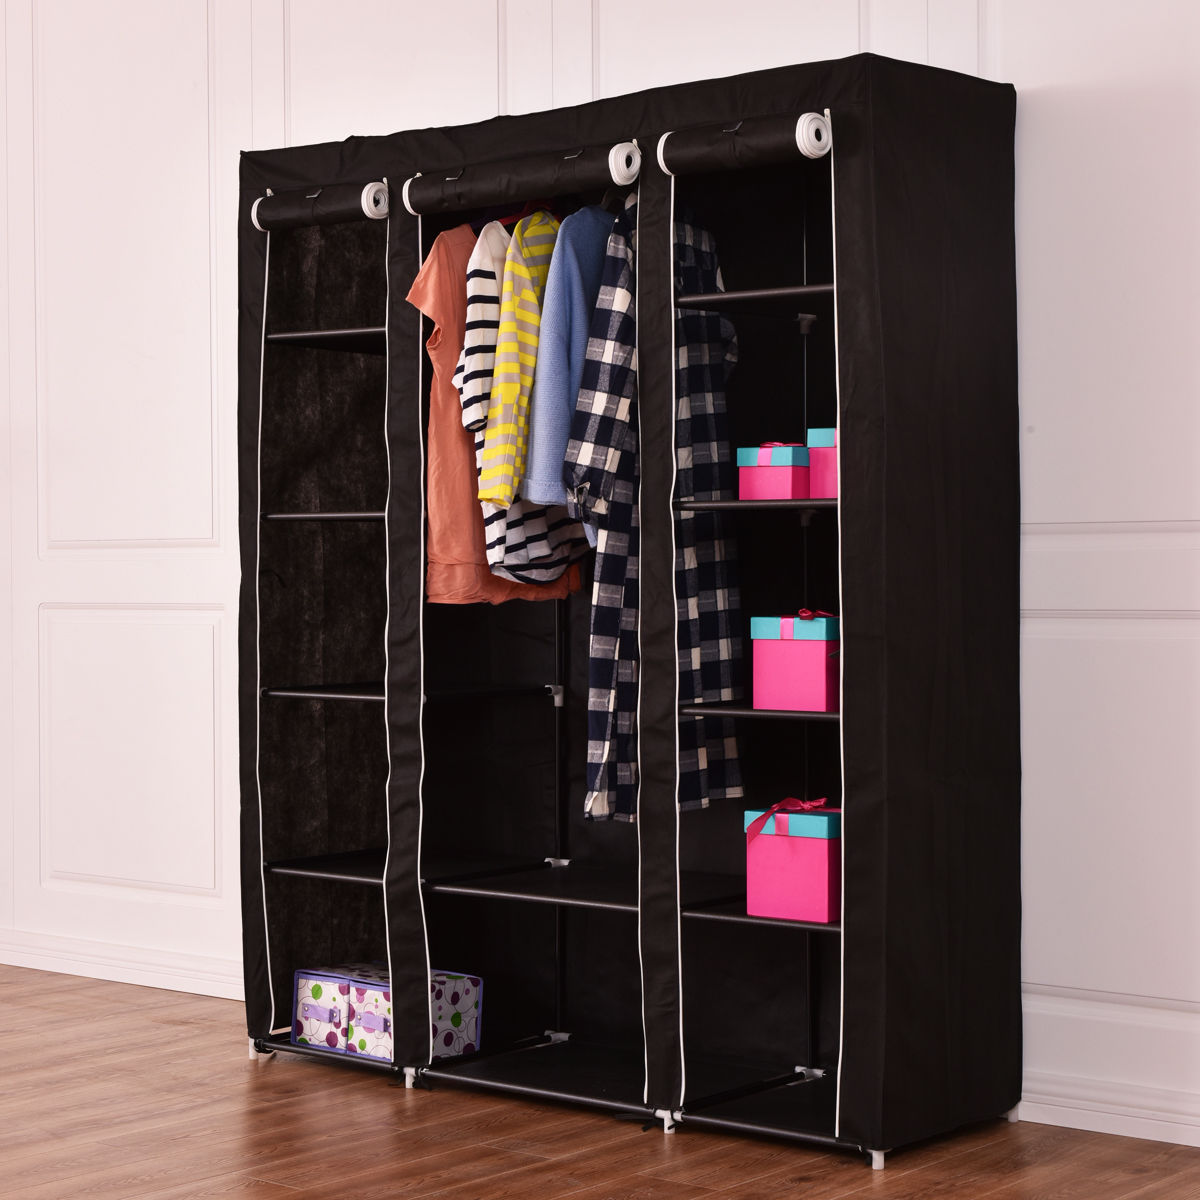 Costway 70u0027u0027 Portable Closet Storage Organizer Clothes Wardrobe Shoe Rack W/ Shelves Black